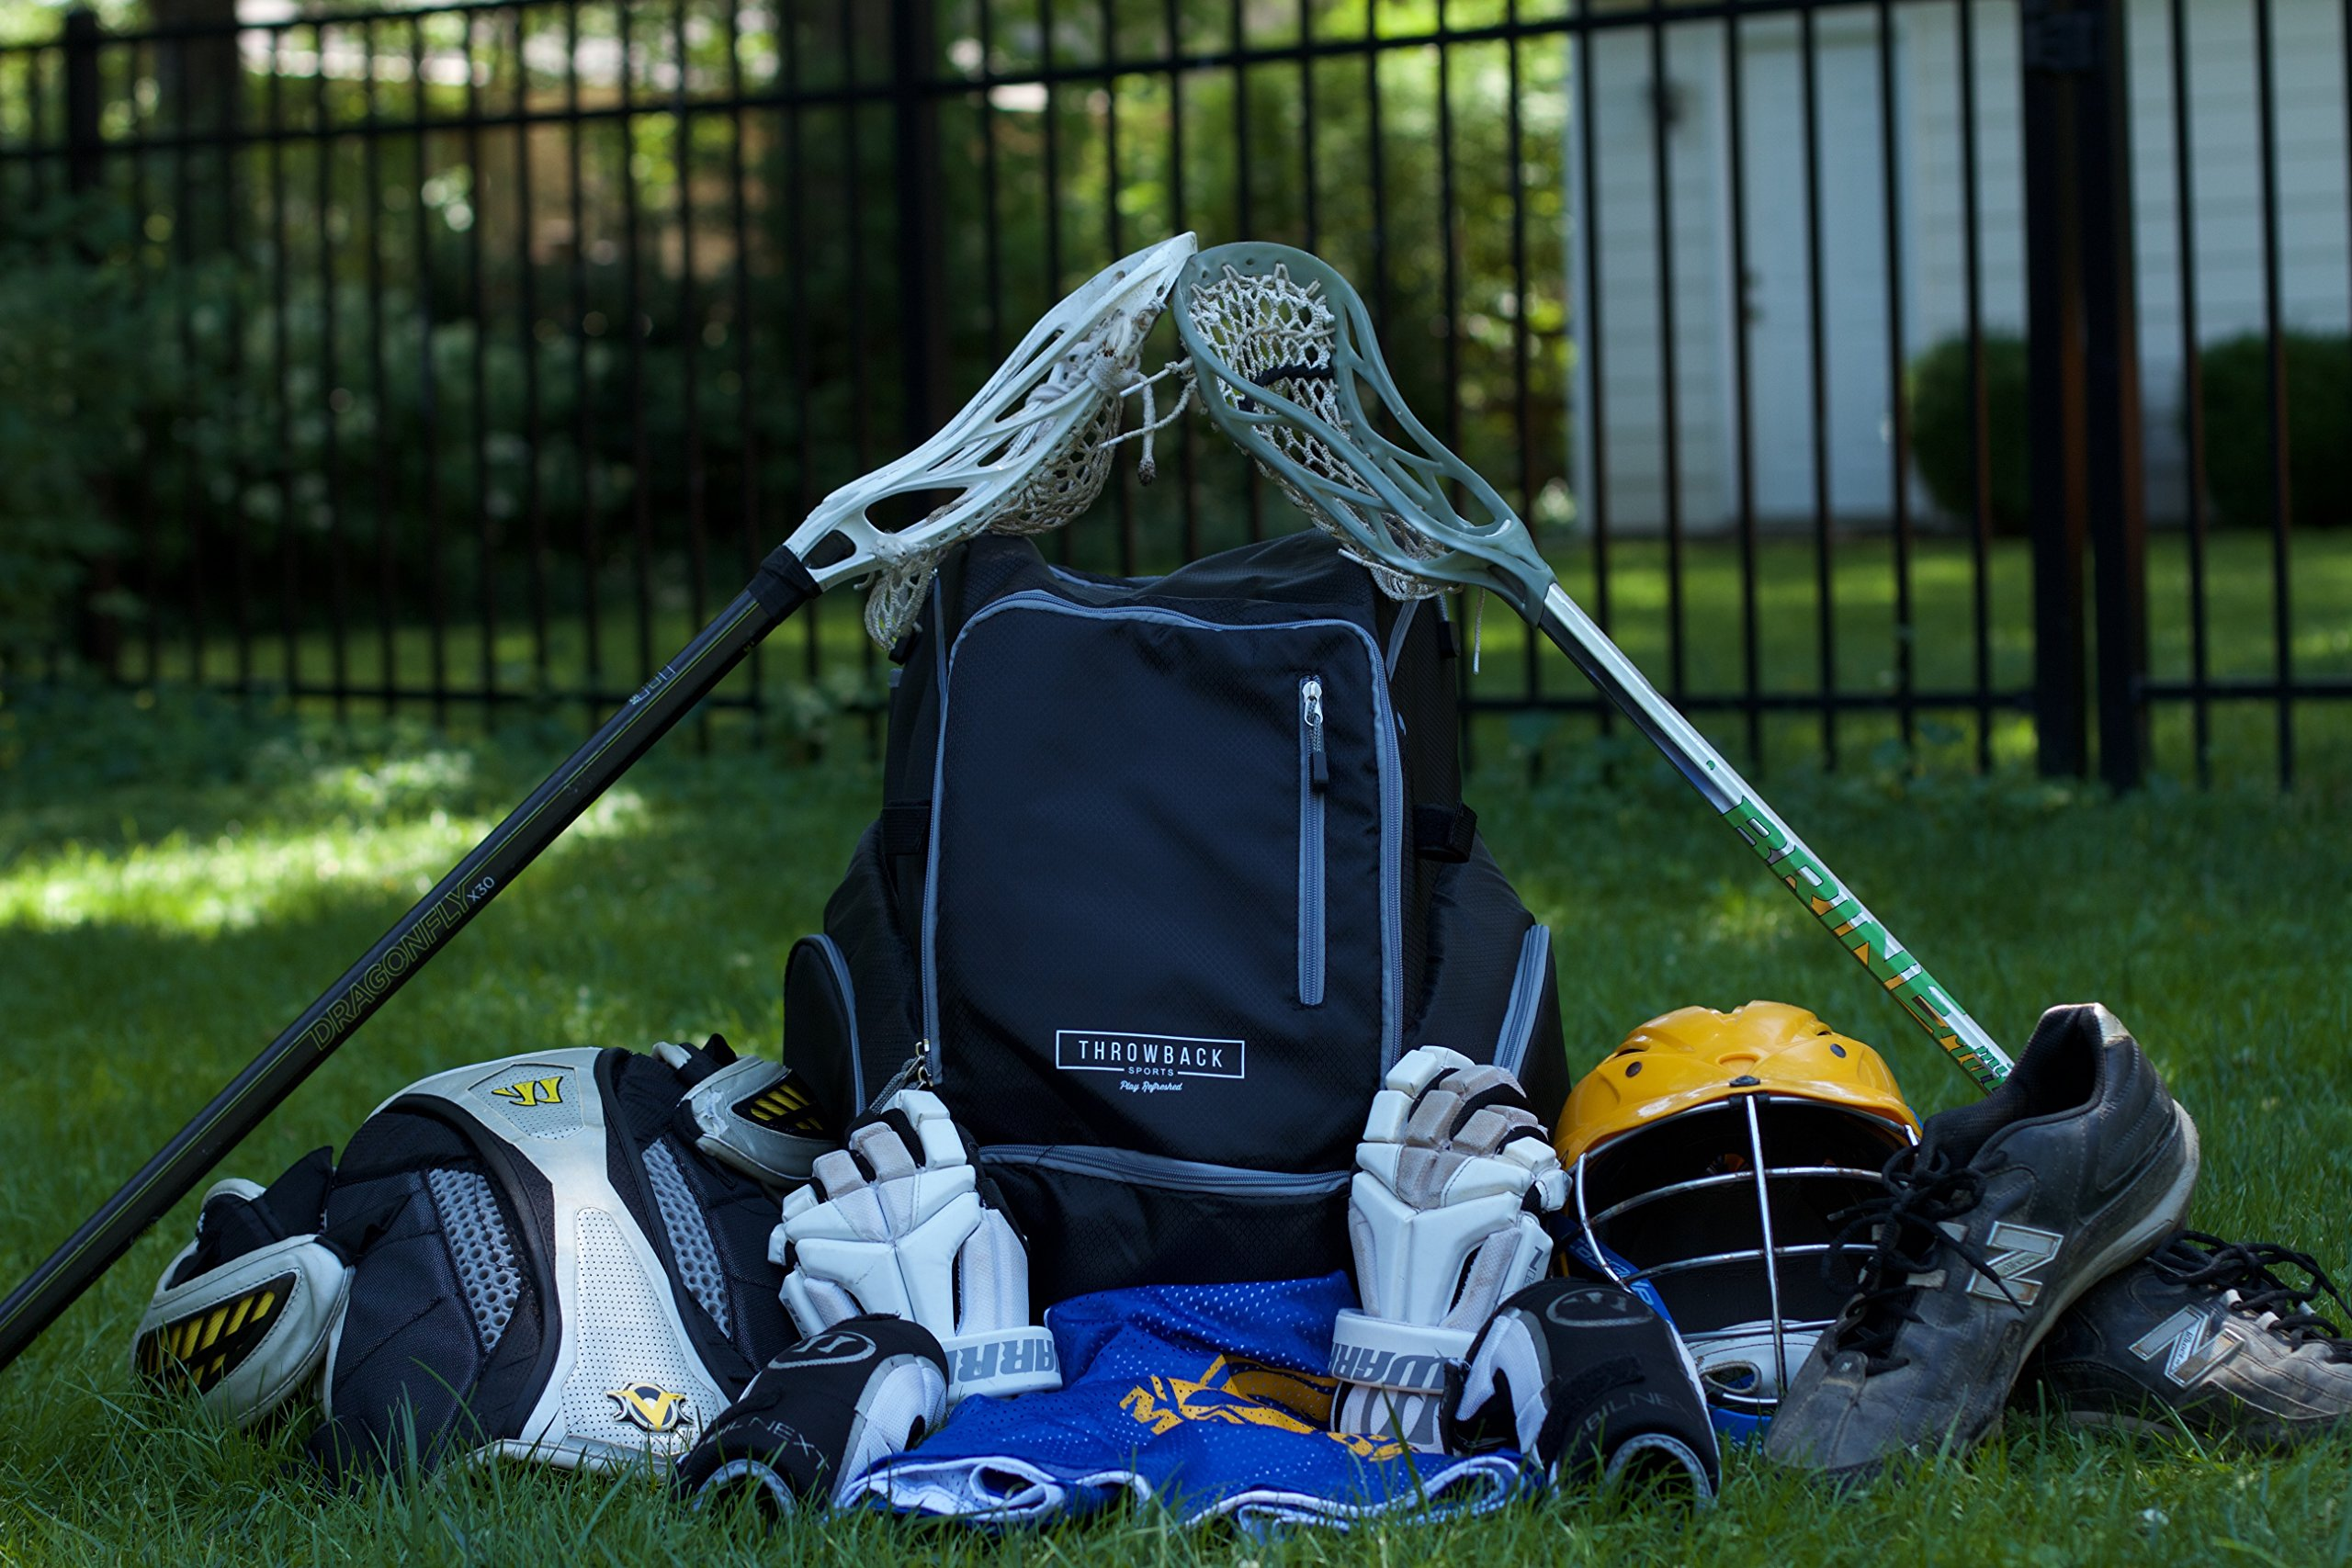 Throwback Gametime Pack XL - Large Lacrosse Backpack & Field Hockey Bag With Cooler - Perfect For Multi-Sport Athletes - Includes Racquet Holder For Tennis, Racquetball + Separate Shoe Compartment by Throwback Sports (Image #2)